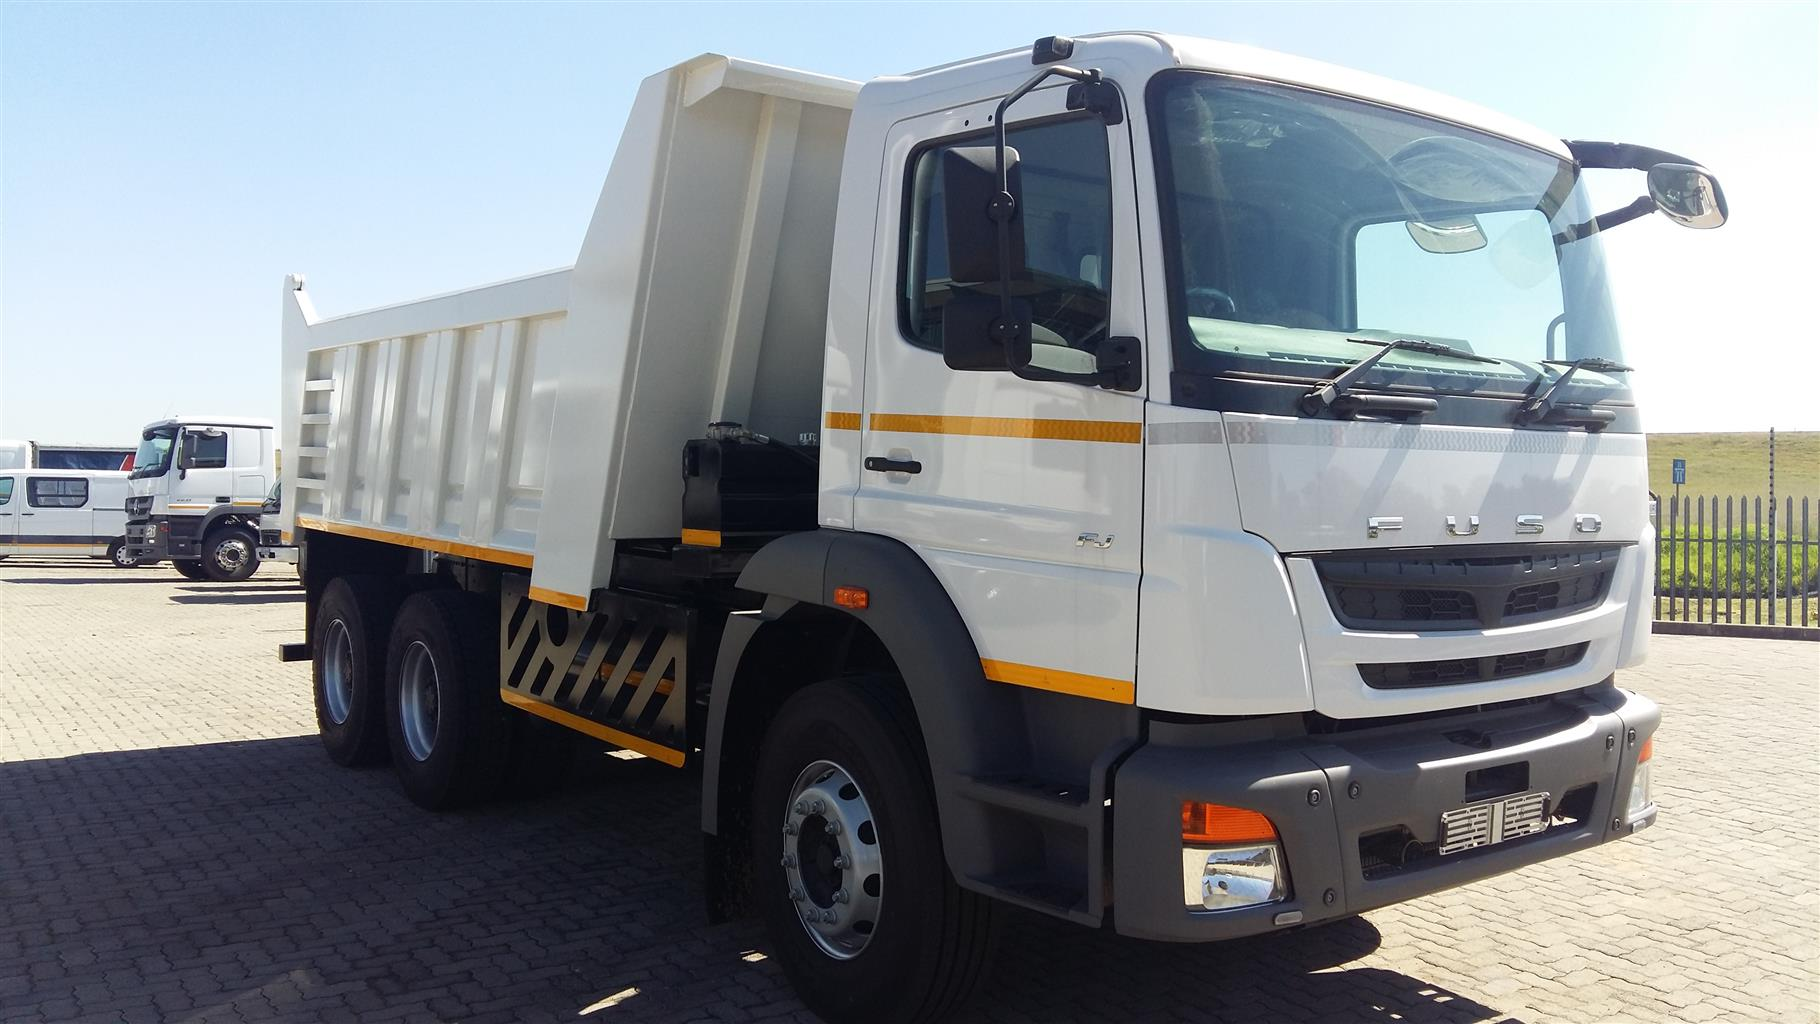 2018 Demo Fuso 10m Cube tipper Truck Special... Ready to work ! Basically Brand new !!!